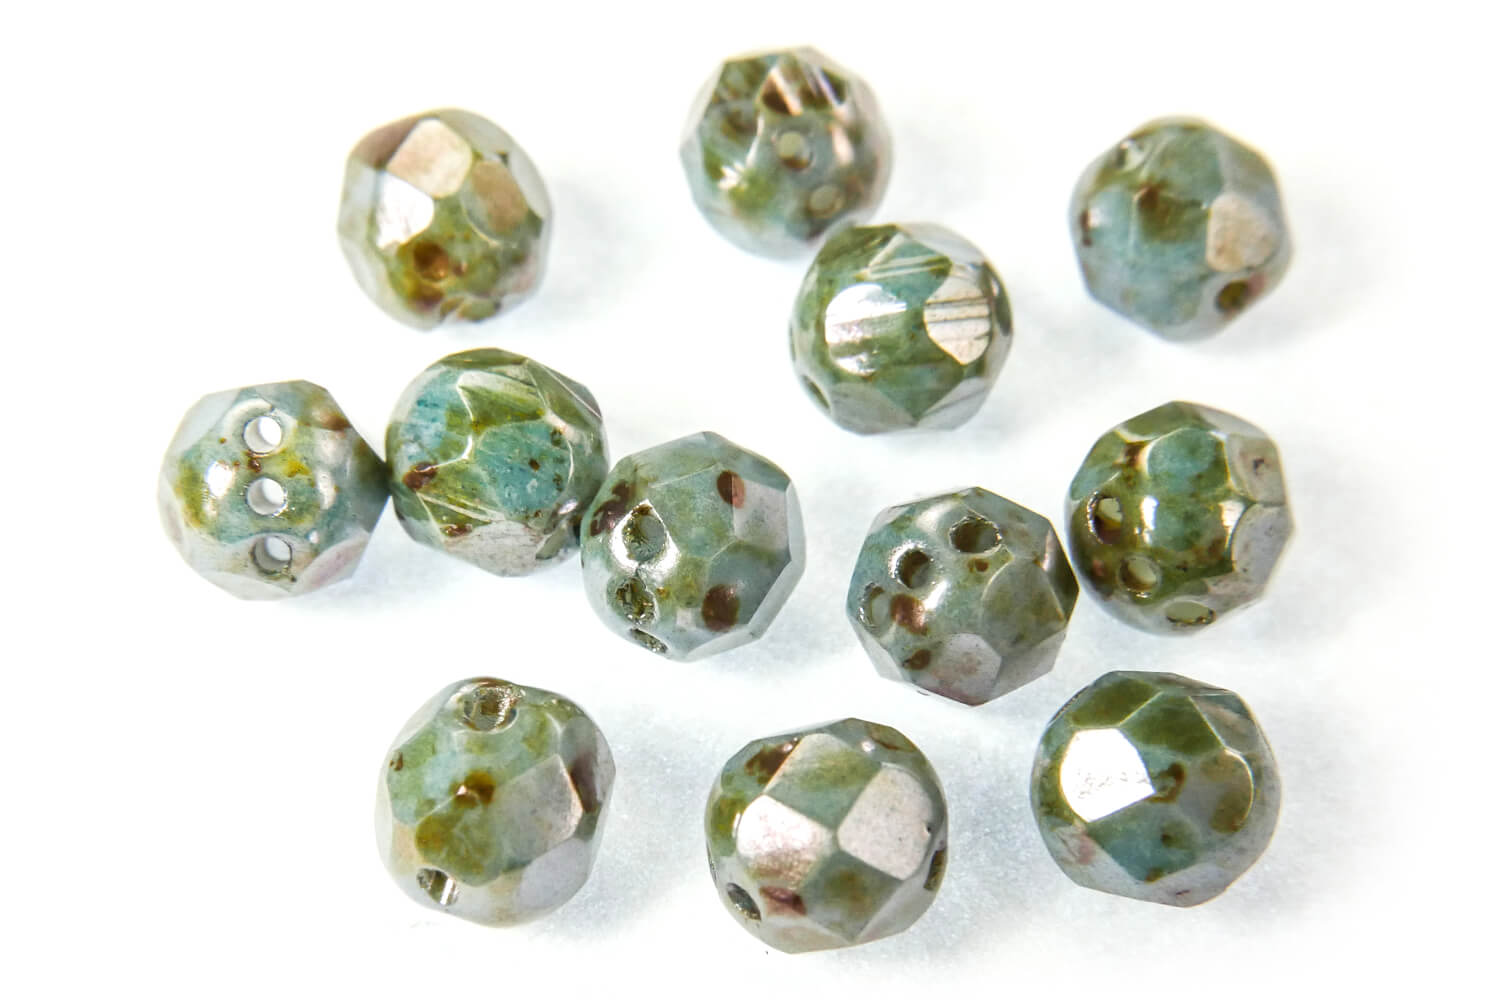 Czech Pressed Glass Beads / RounTrio® Faceted Beads